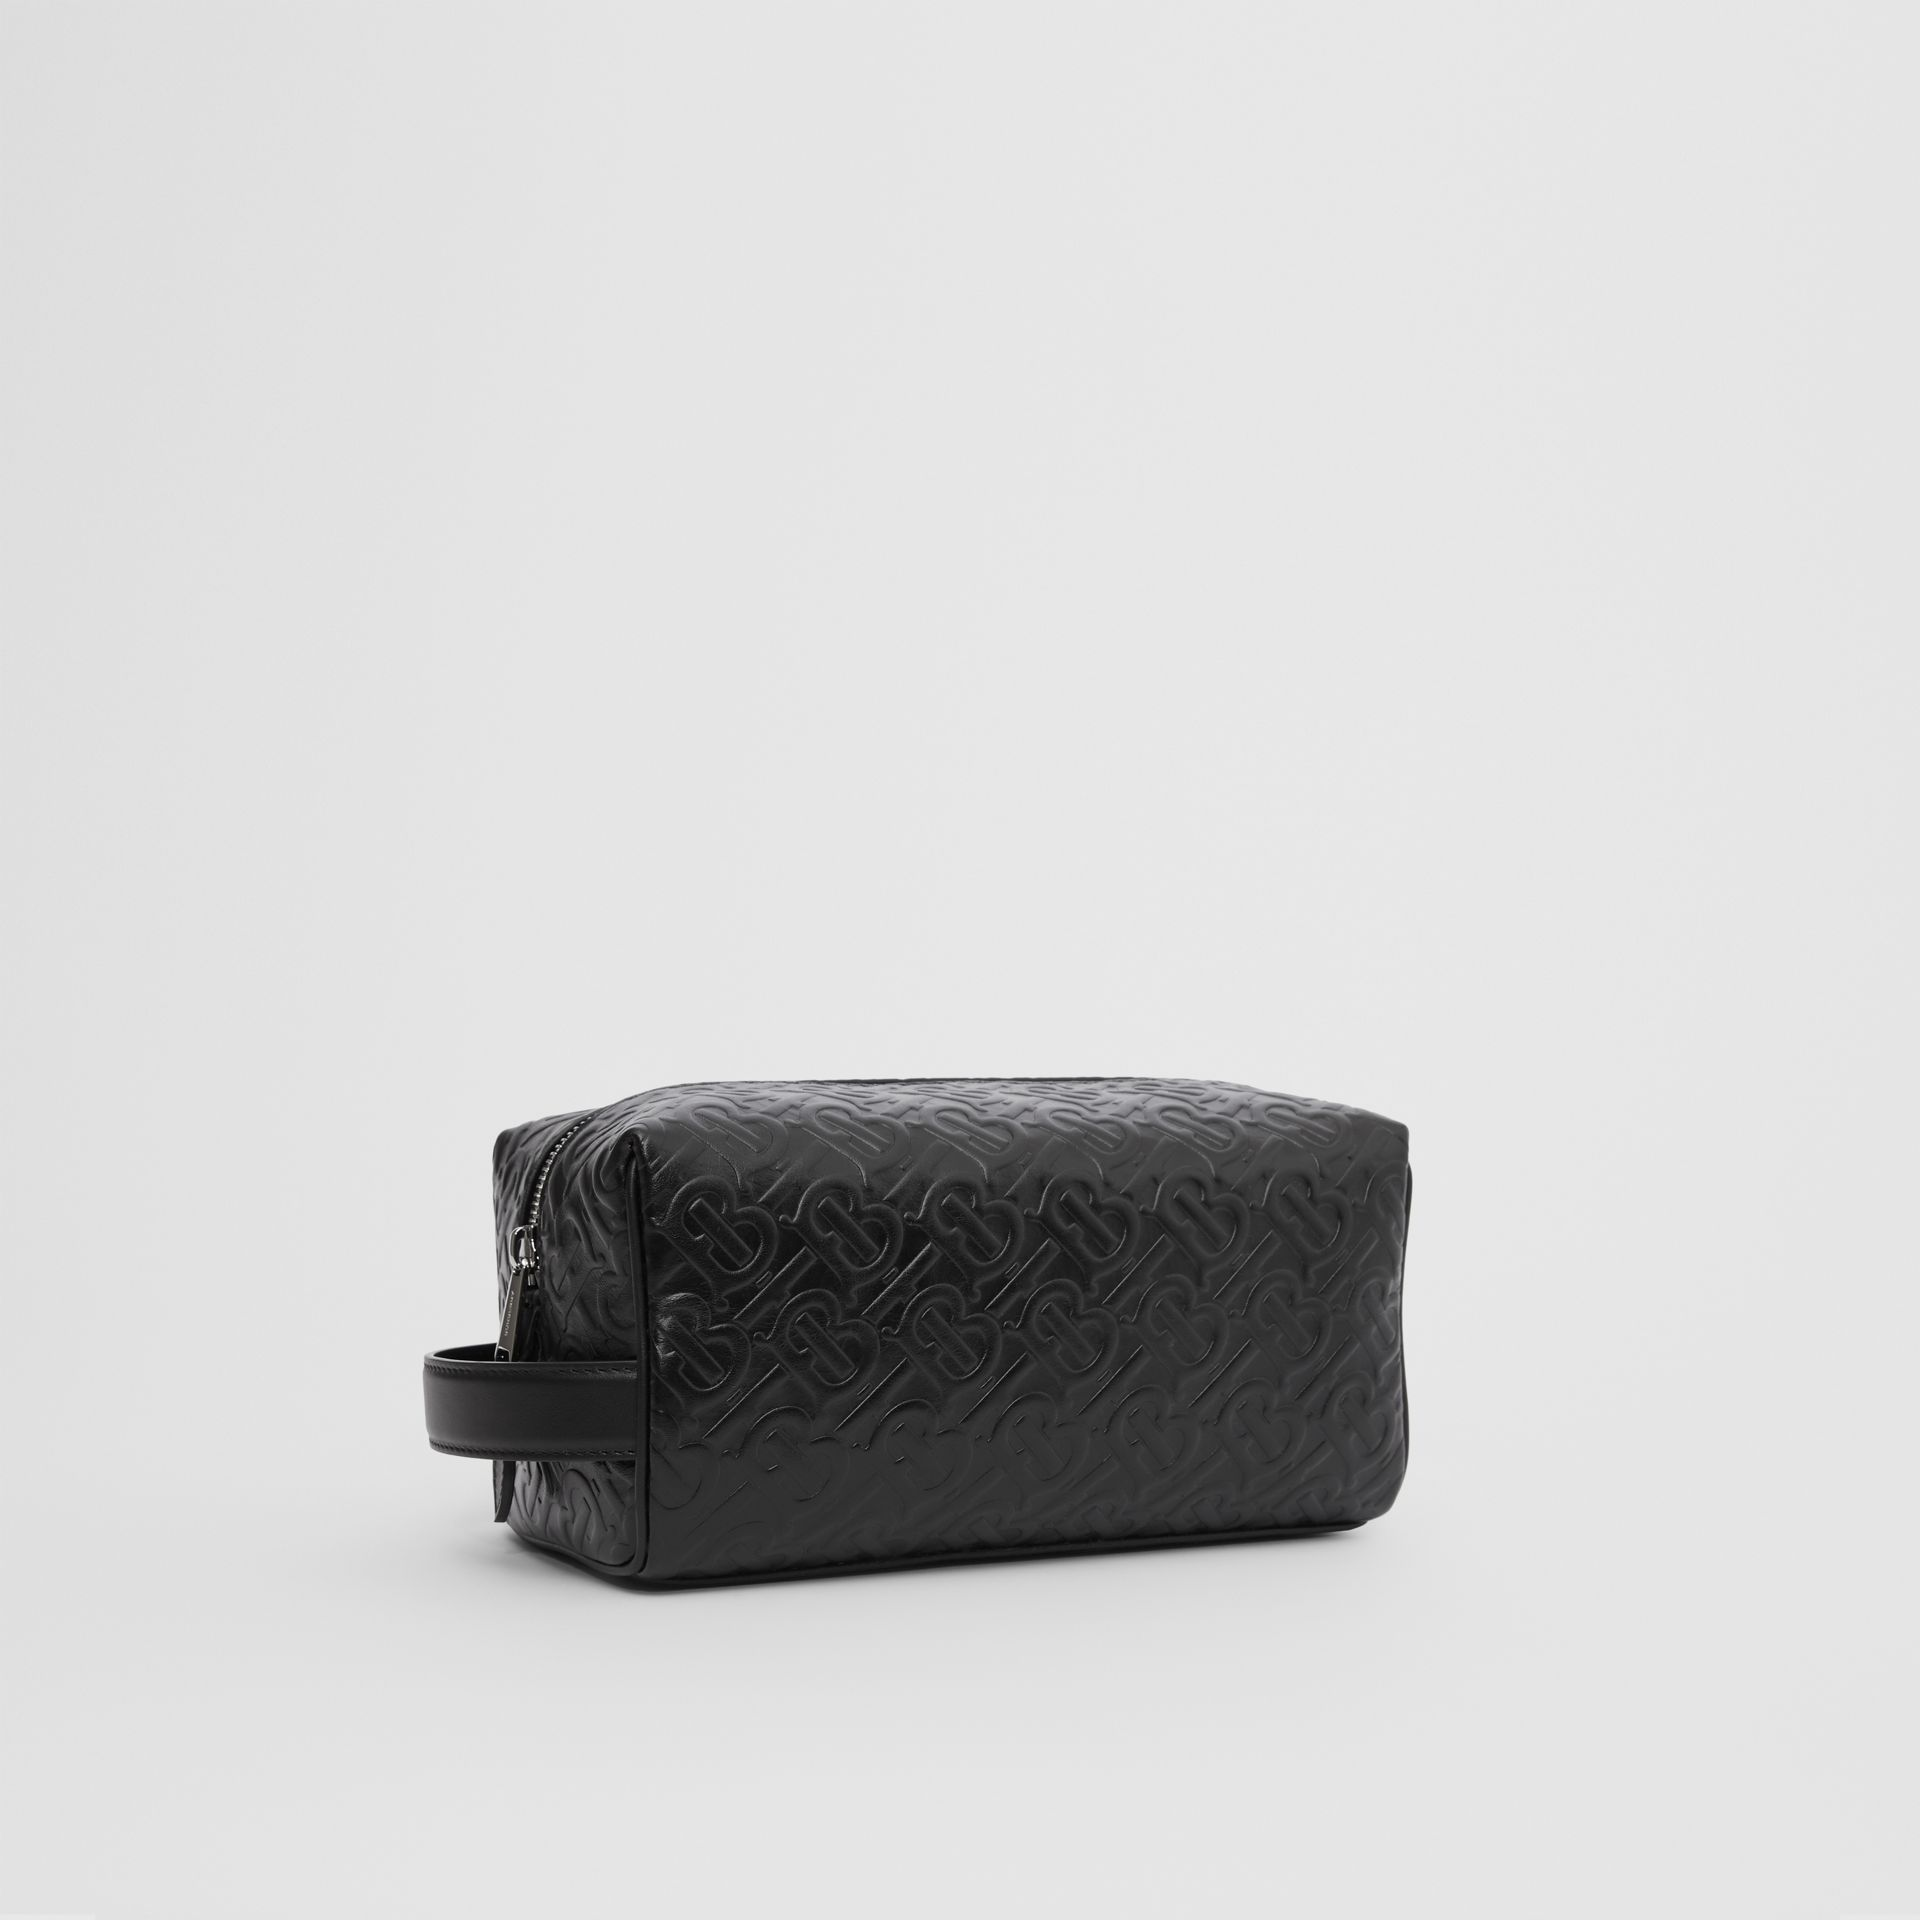 Monogram Leather Travel Pouch in Black - Men | Burberry - gallery image 6